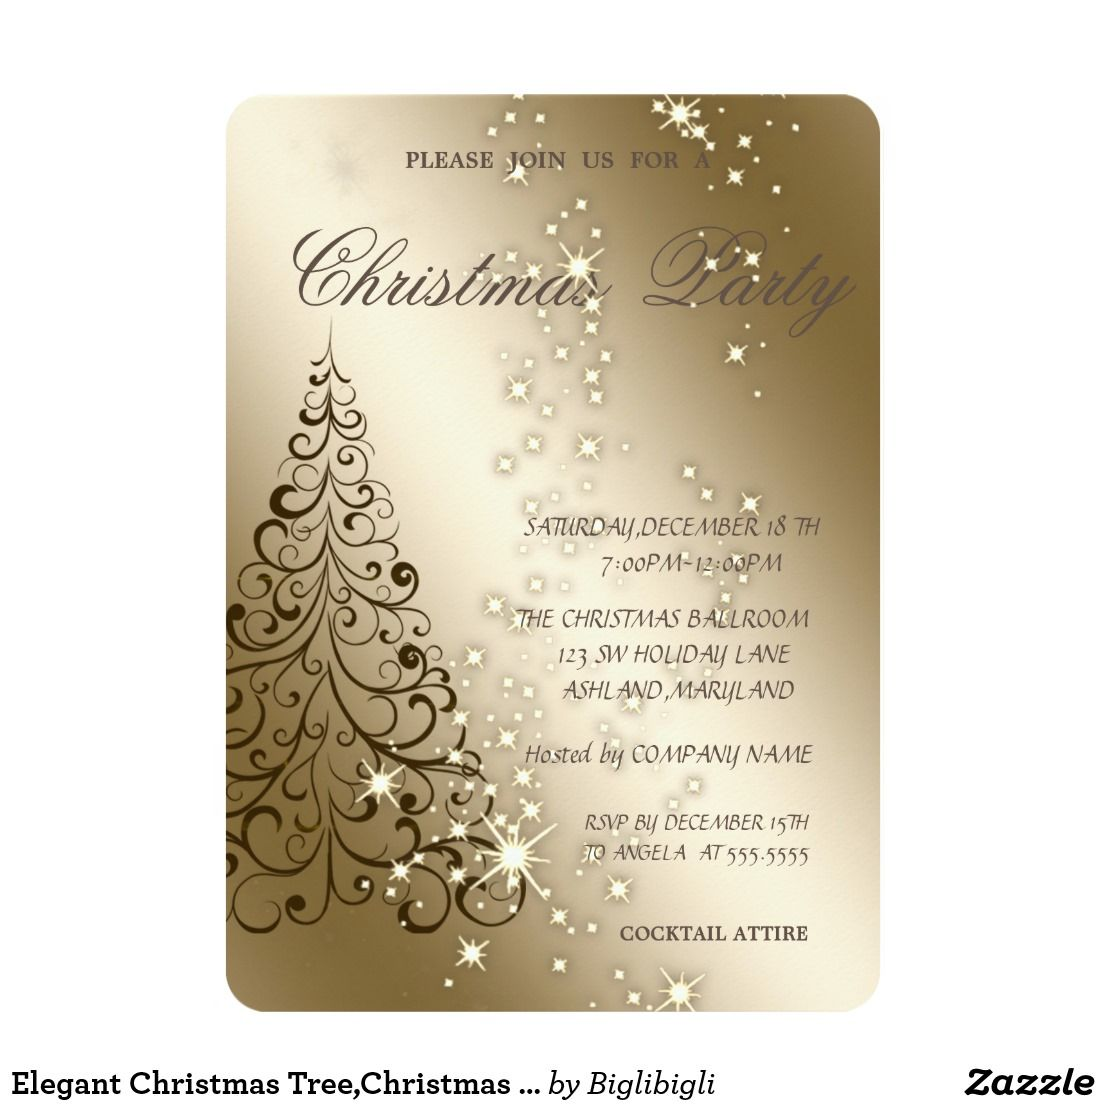 elegant christmas treechristmas party card an elegant holiday party invitation featuring a black christmas tree on gold background